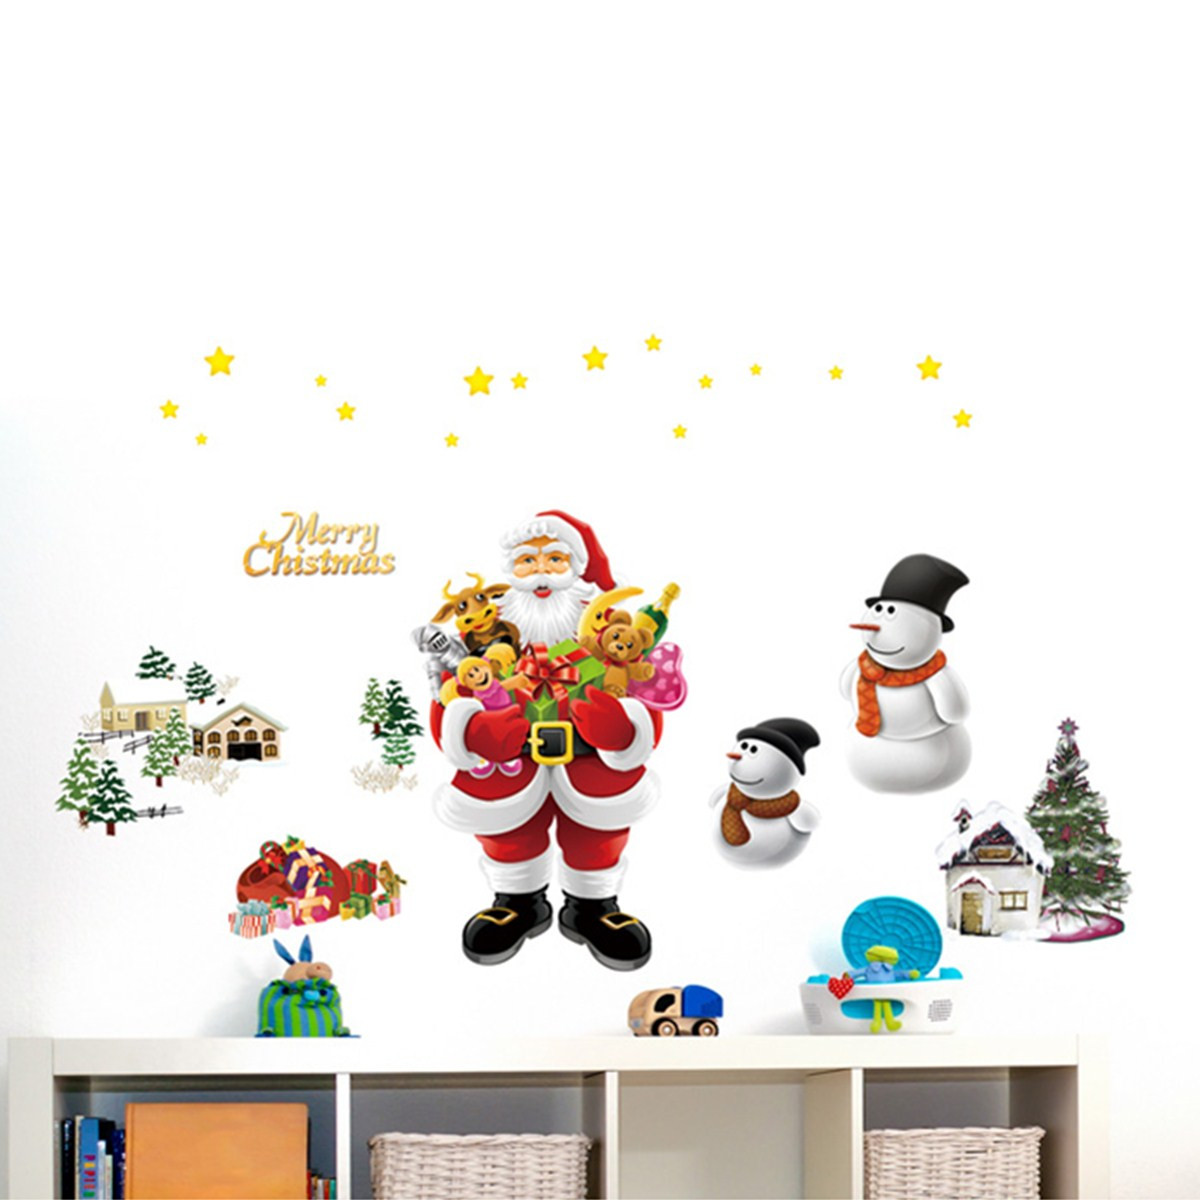 Removable Santa Claus Reindeer Window Wall Sticker Christmas Home Decor Wall Mural Decals 'Merry Christmas'' Wall Hanging Decor